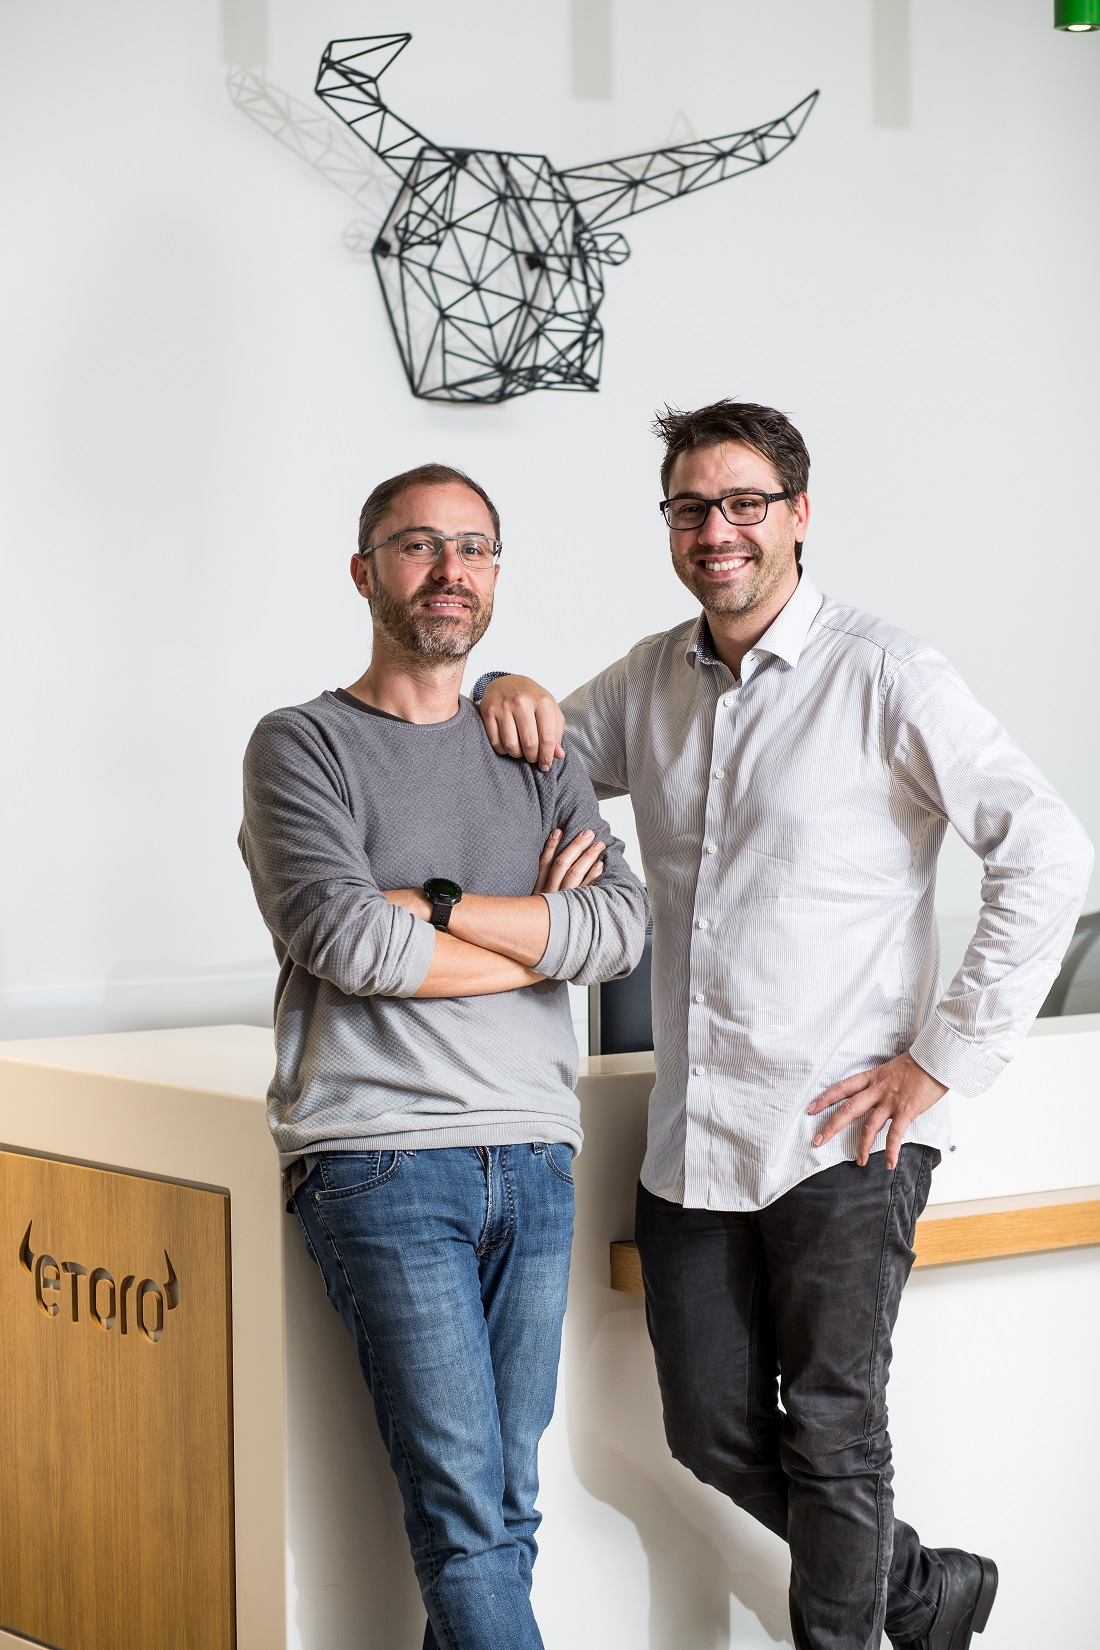 Ronen and Yoni Assia, co-founders of eToro, a global multi-asset investment platform, with 11 million registered